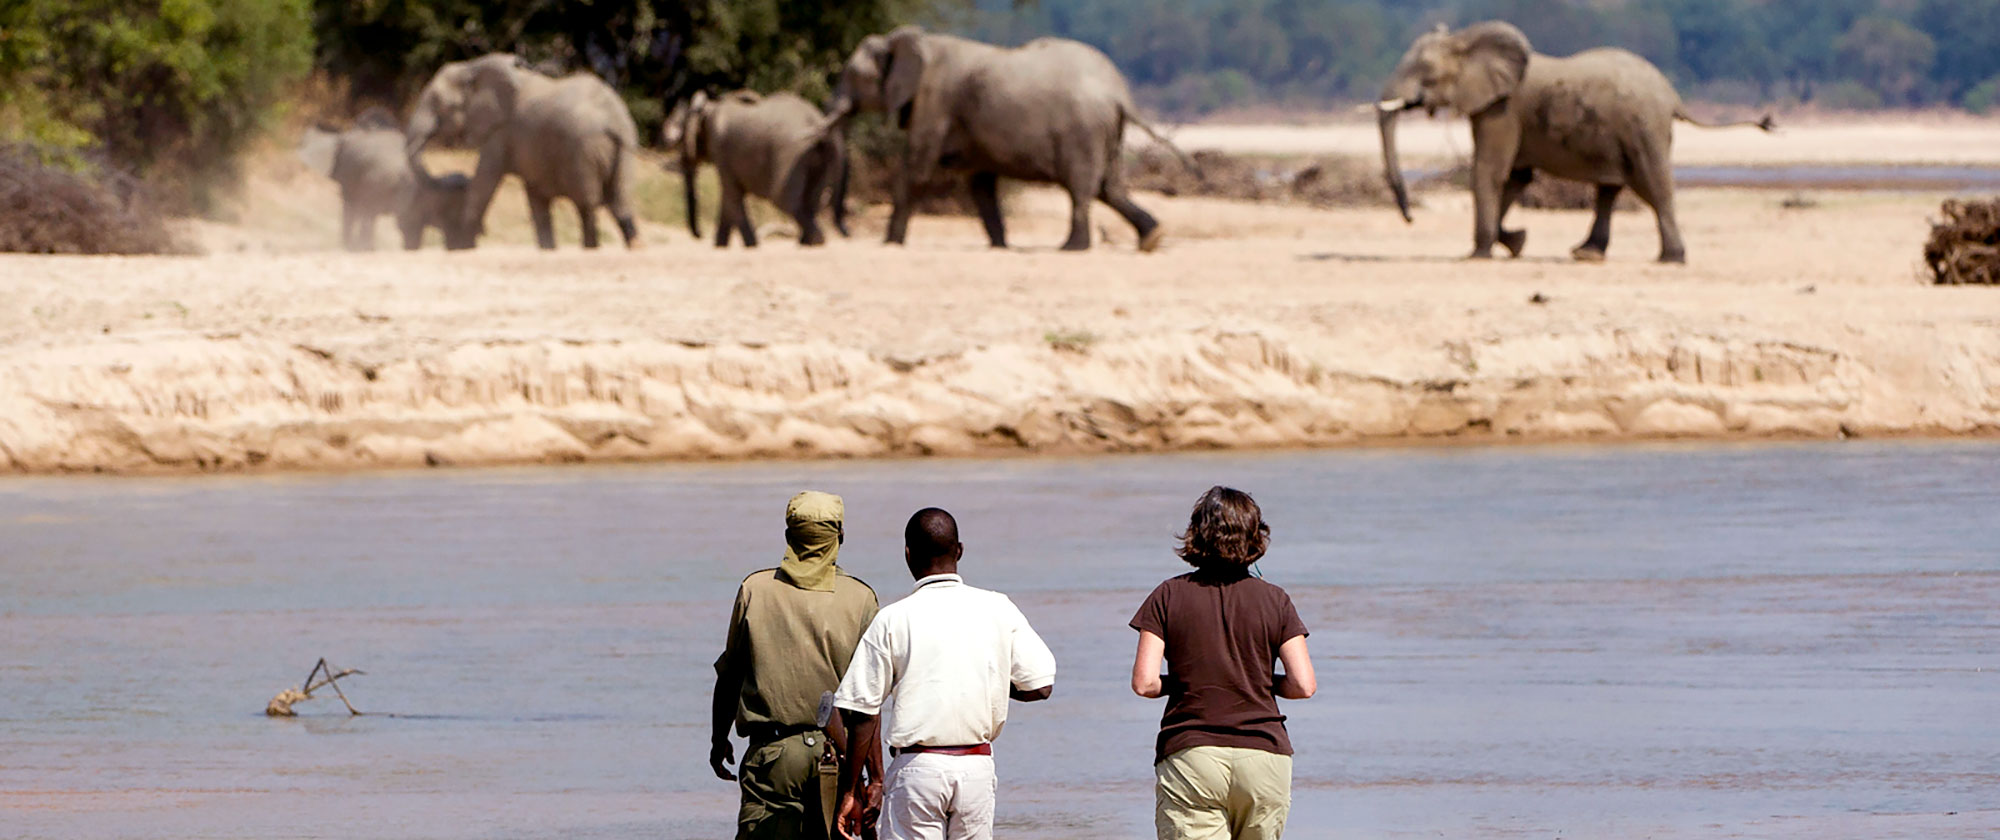 Remote Safari Tour: Zambia Adventure